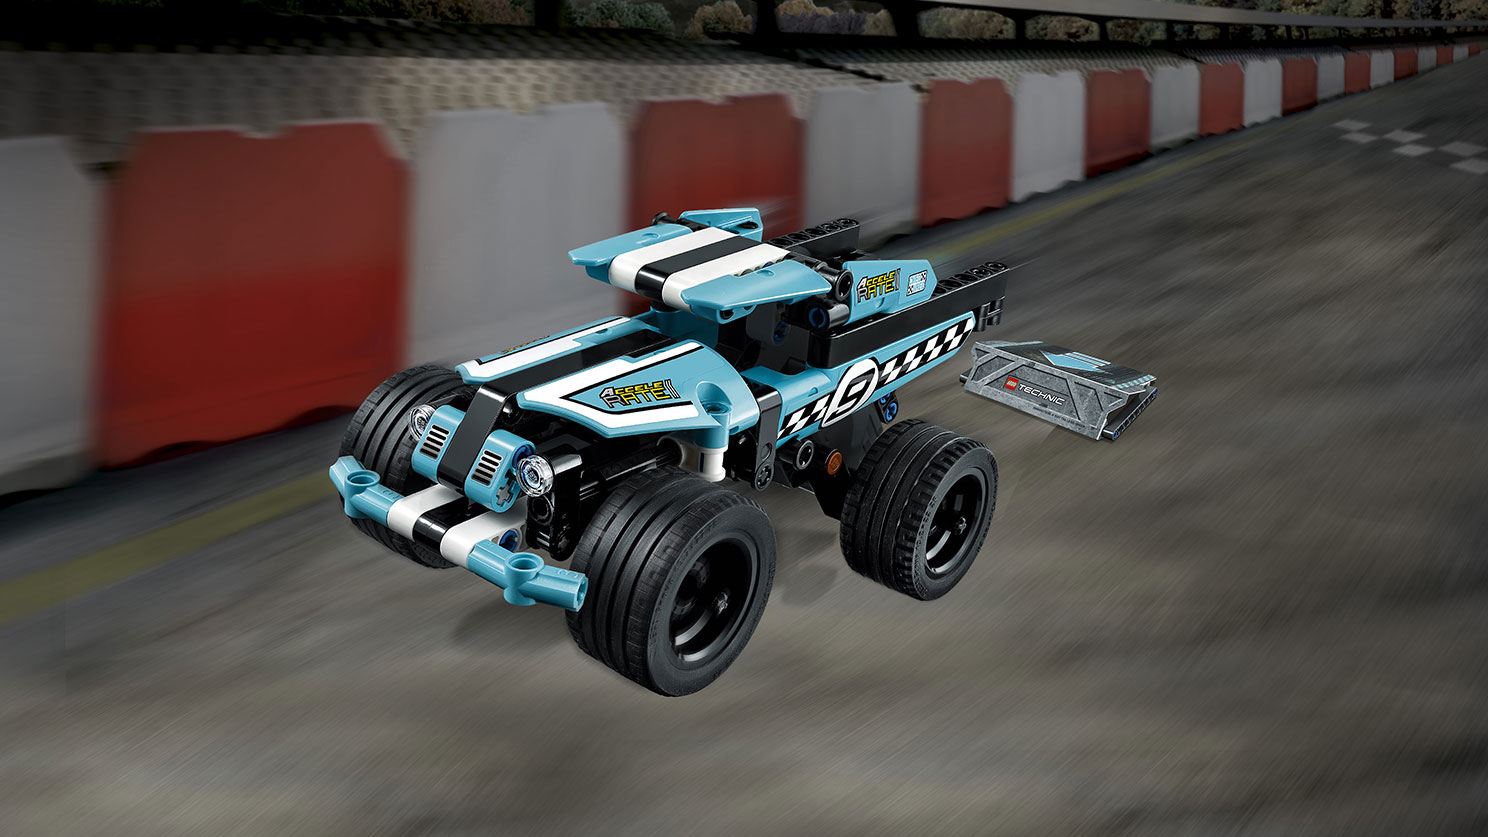 LEGO Technic - 42059 Stunt Truck - Activate the pull-back motor of the rugged Stunt Truck with checkered racing stickers, sturdy front bumper and wide blue rims with low profile tires for ultimate grip.